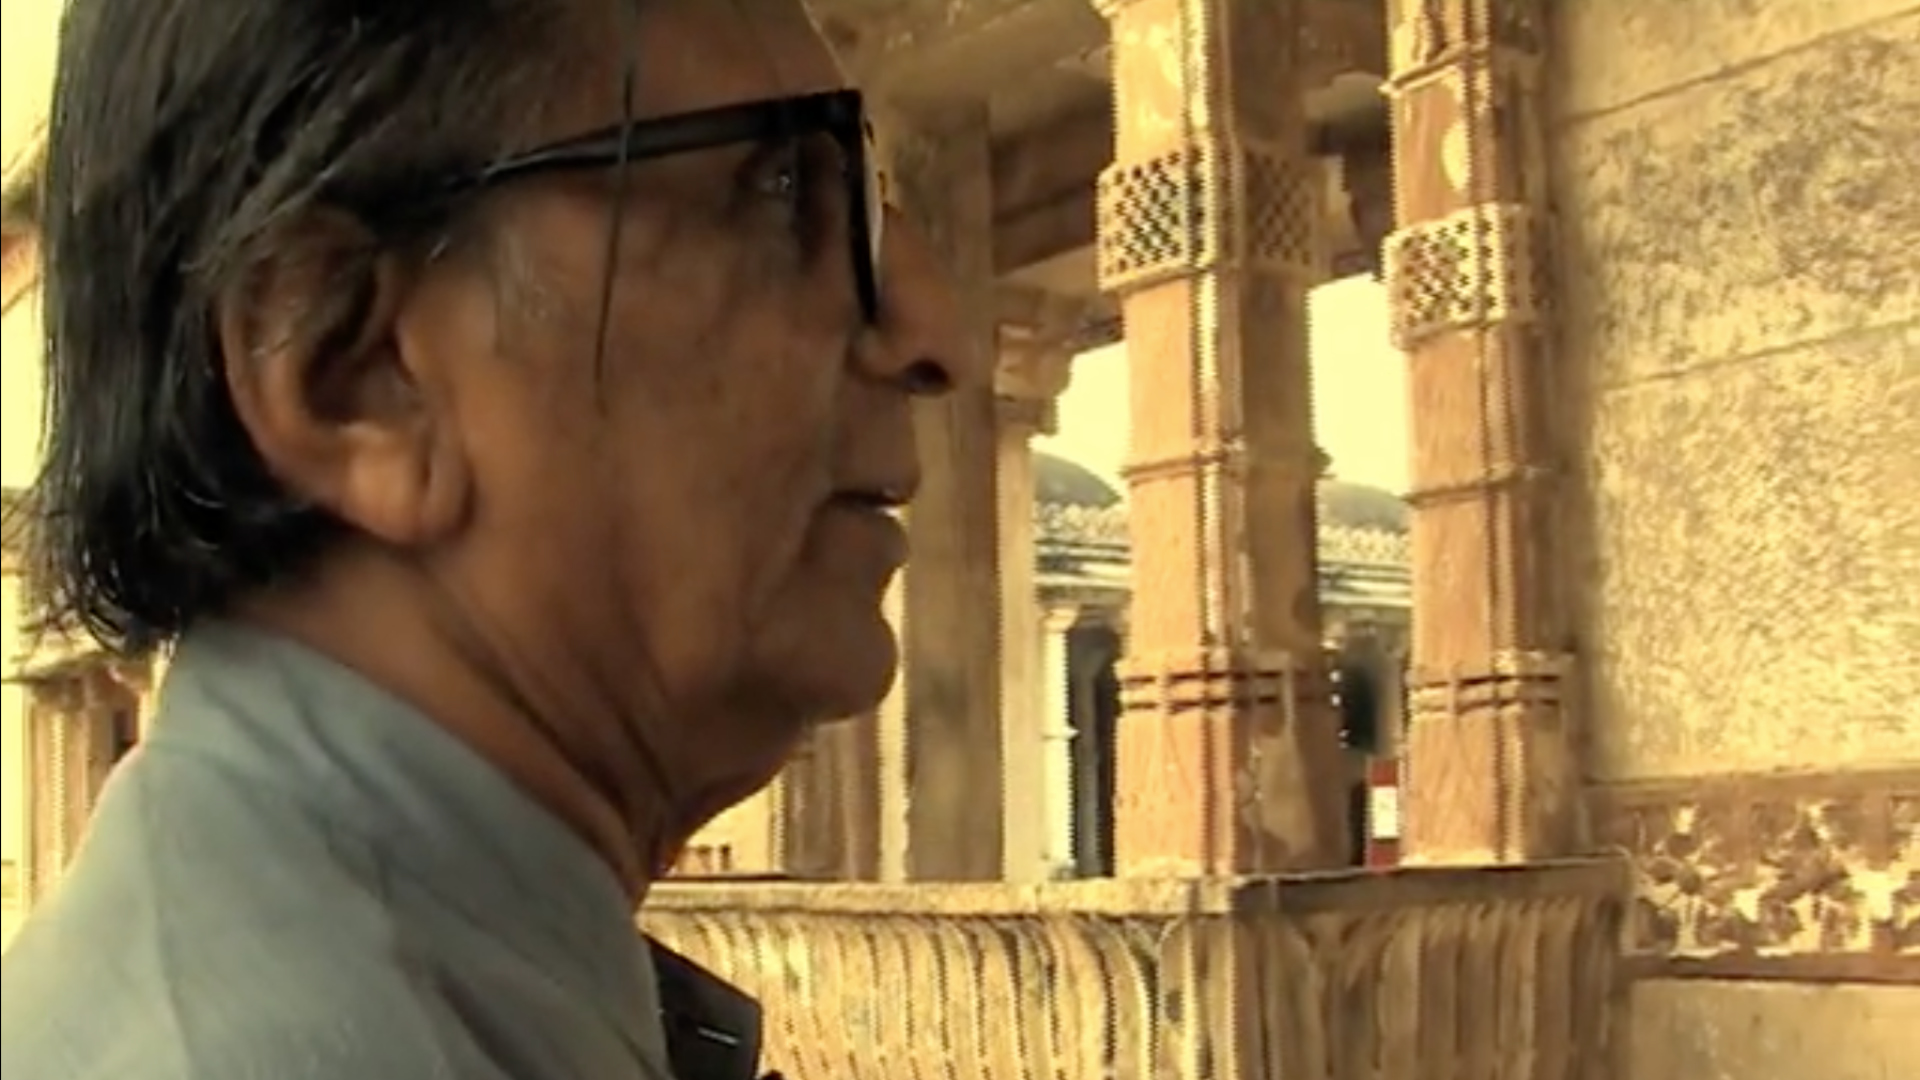 Doshi: Chapter 8 - 'So what is our heritage?'